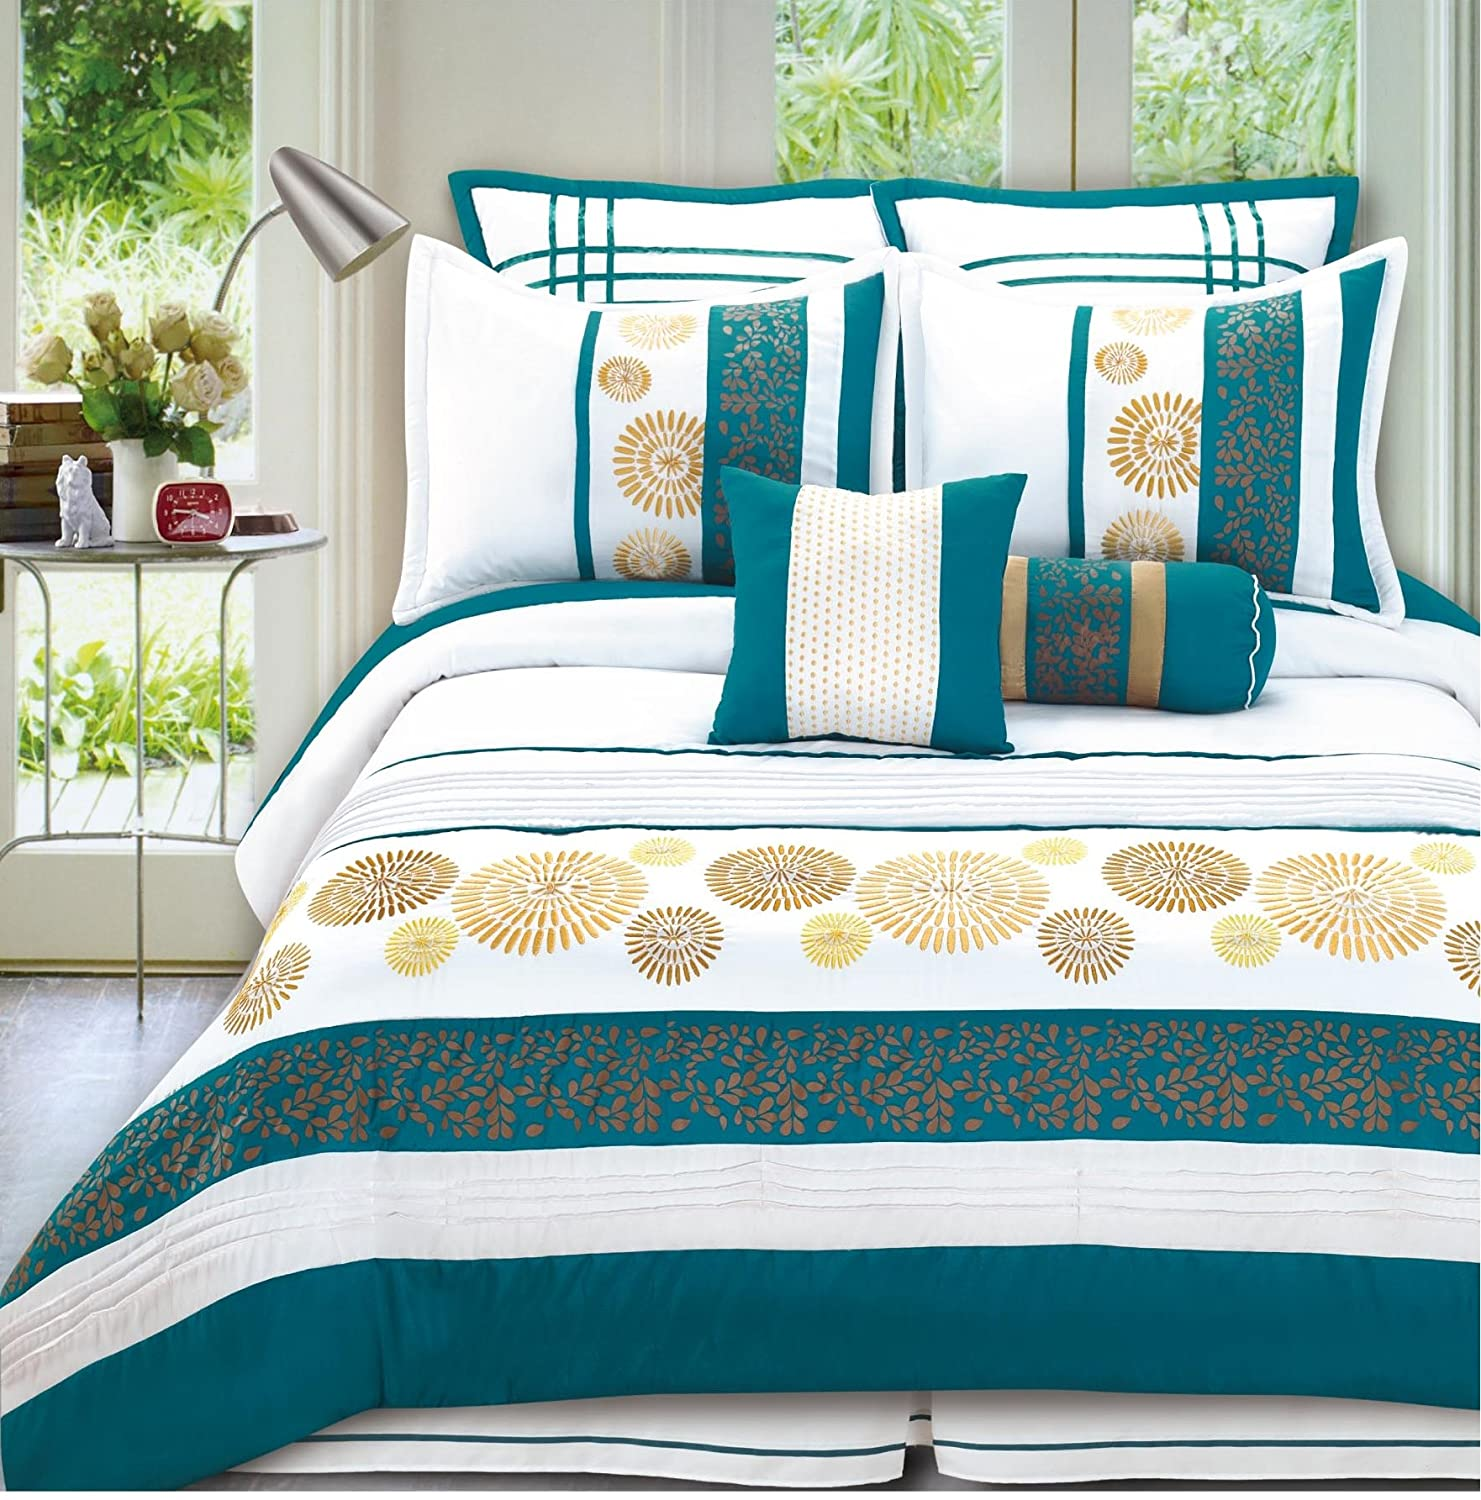 Bednlinens 8 Piece Turquoise gold Beaufort Bedding forter set